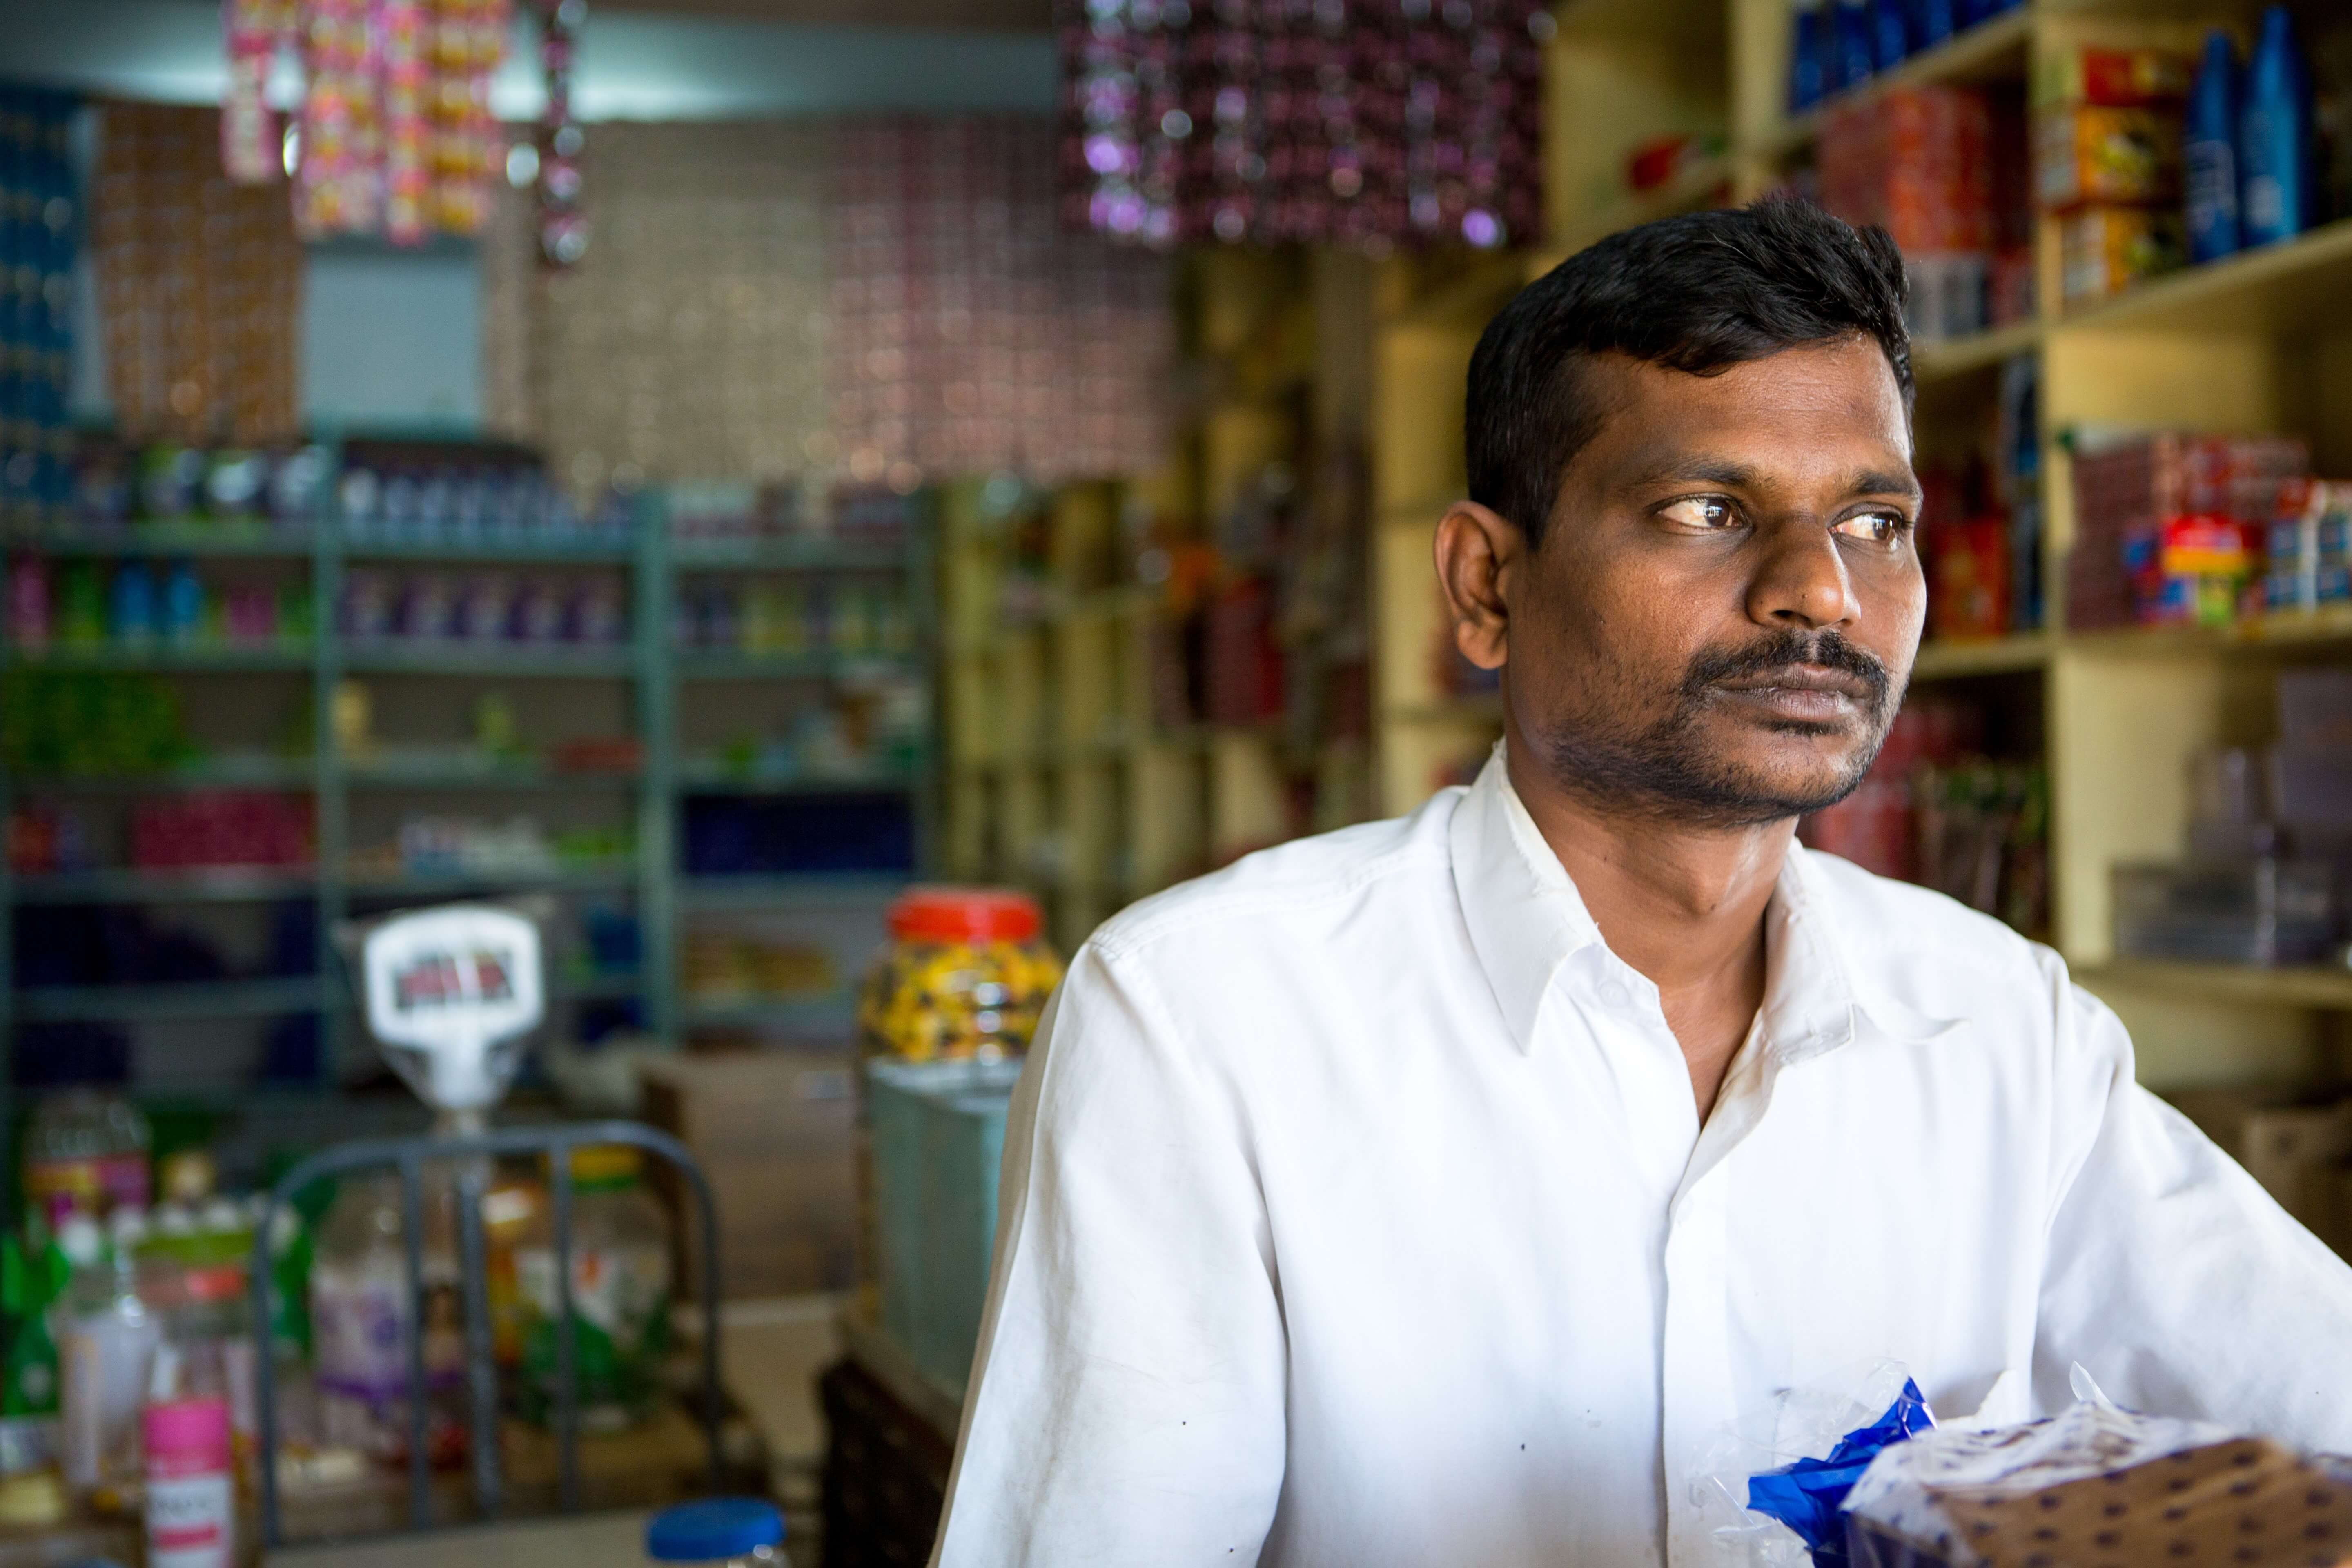 Lakshiminarayana is a client of Aye Finance in Bengaluru, India. Like many others indicated in response to preliminary client surveys, having digitized records enabled him to get the funding that he needed to purchase more inventory and expand his shop. As he continues to grow his business, Lakshimarayanana even hopes to branch into wholesale distribution and increase his income and opportunities.